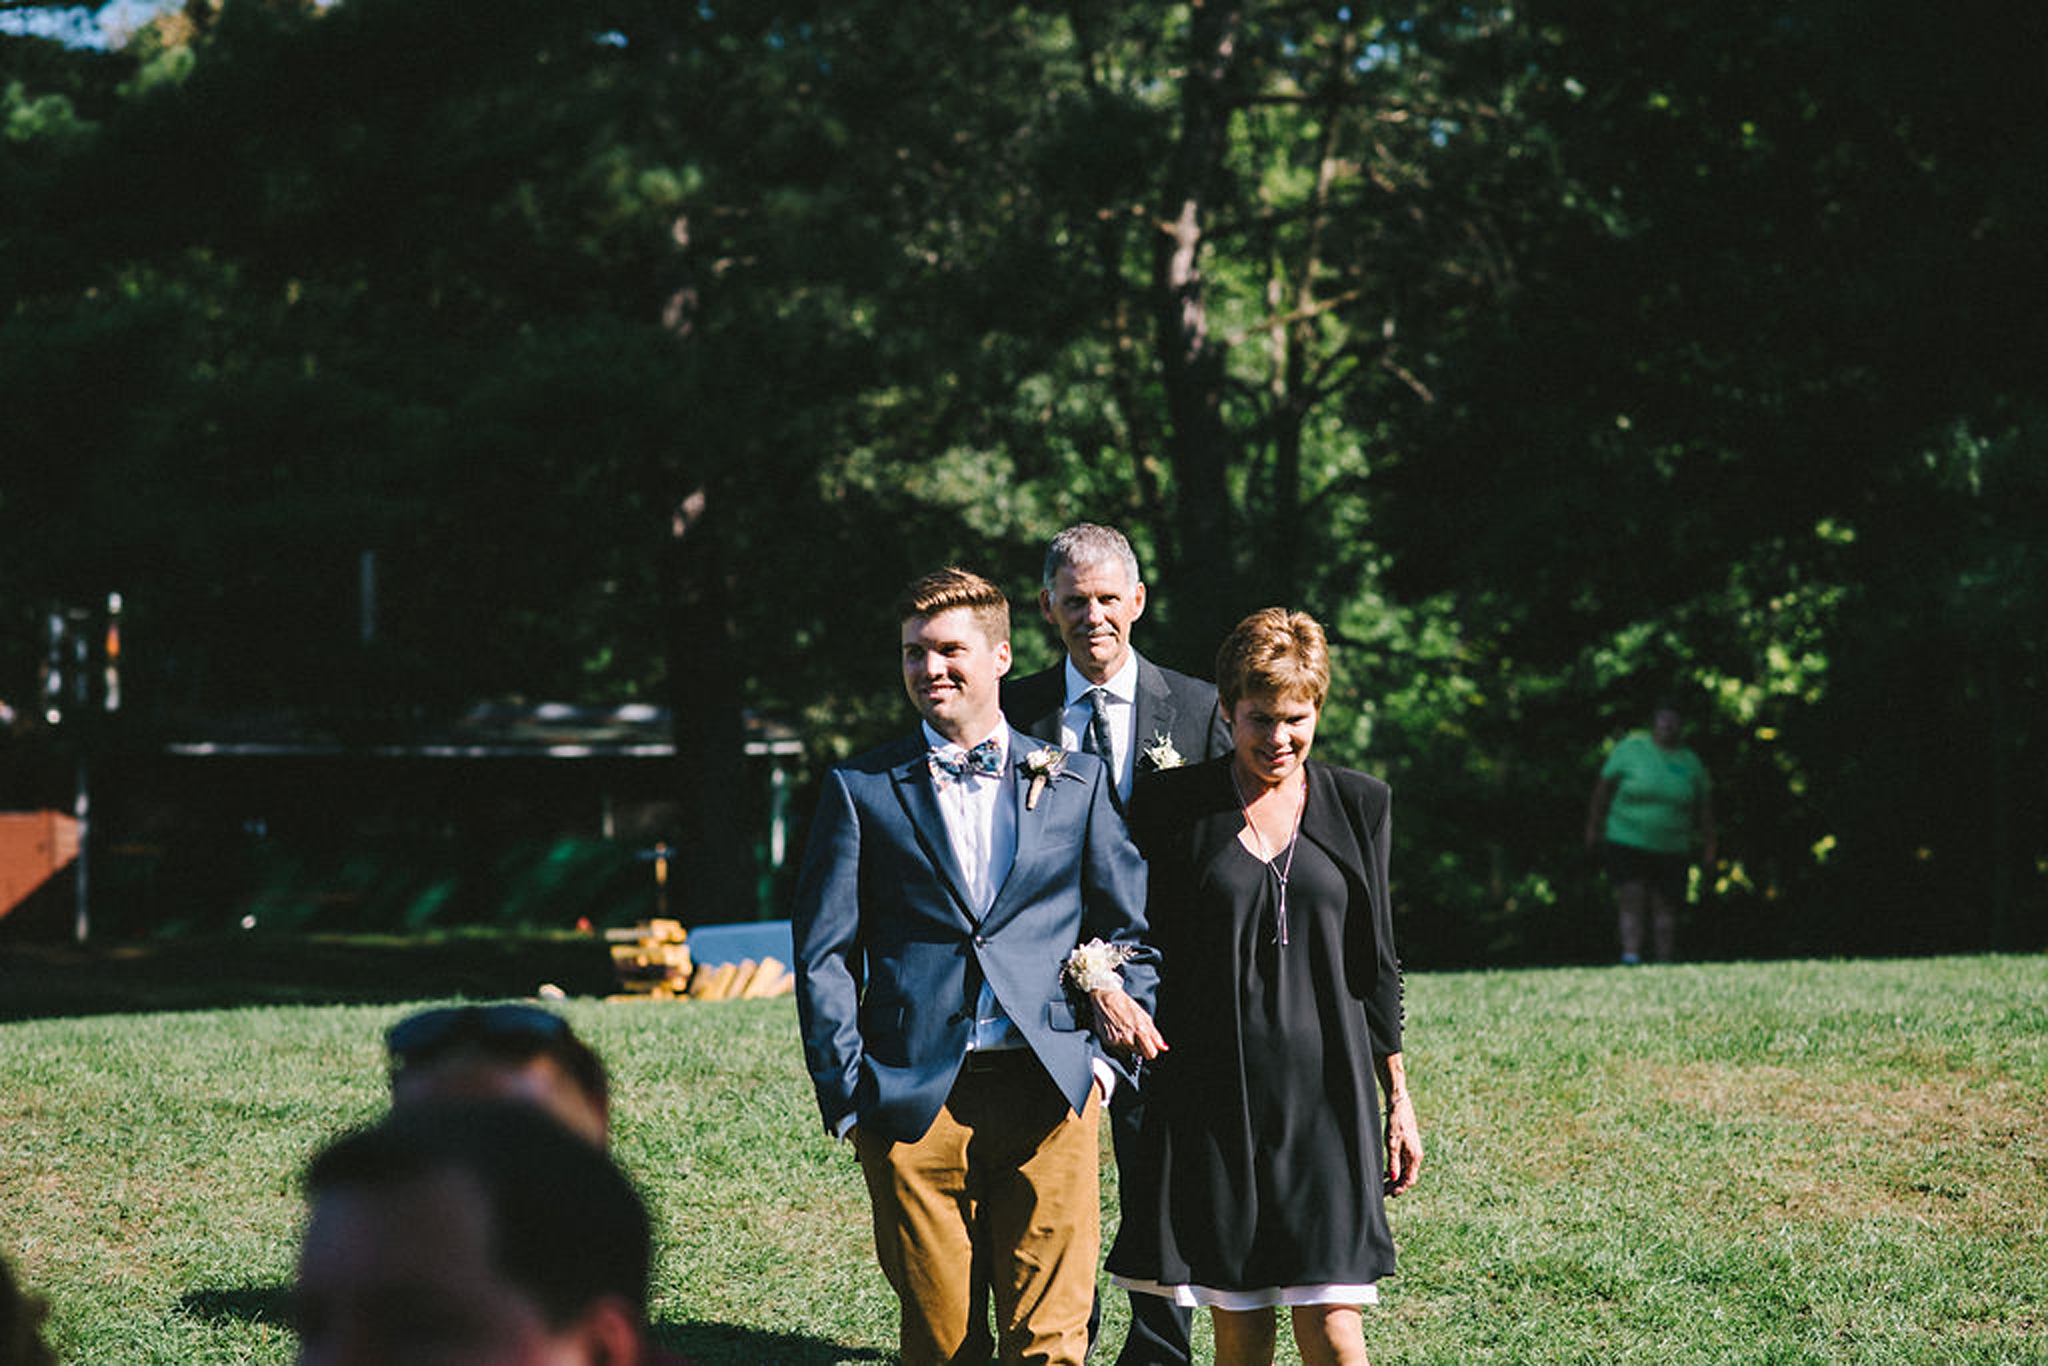 Groom arriving at Parry Sound camp wedding ceremony by lake